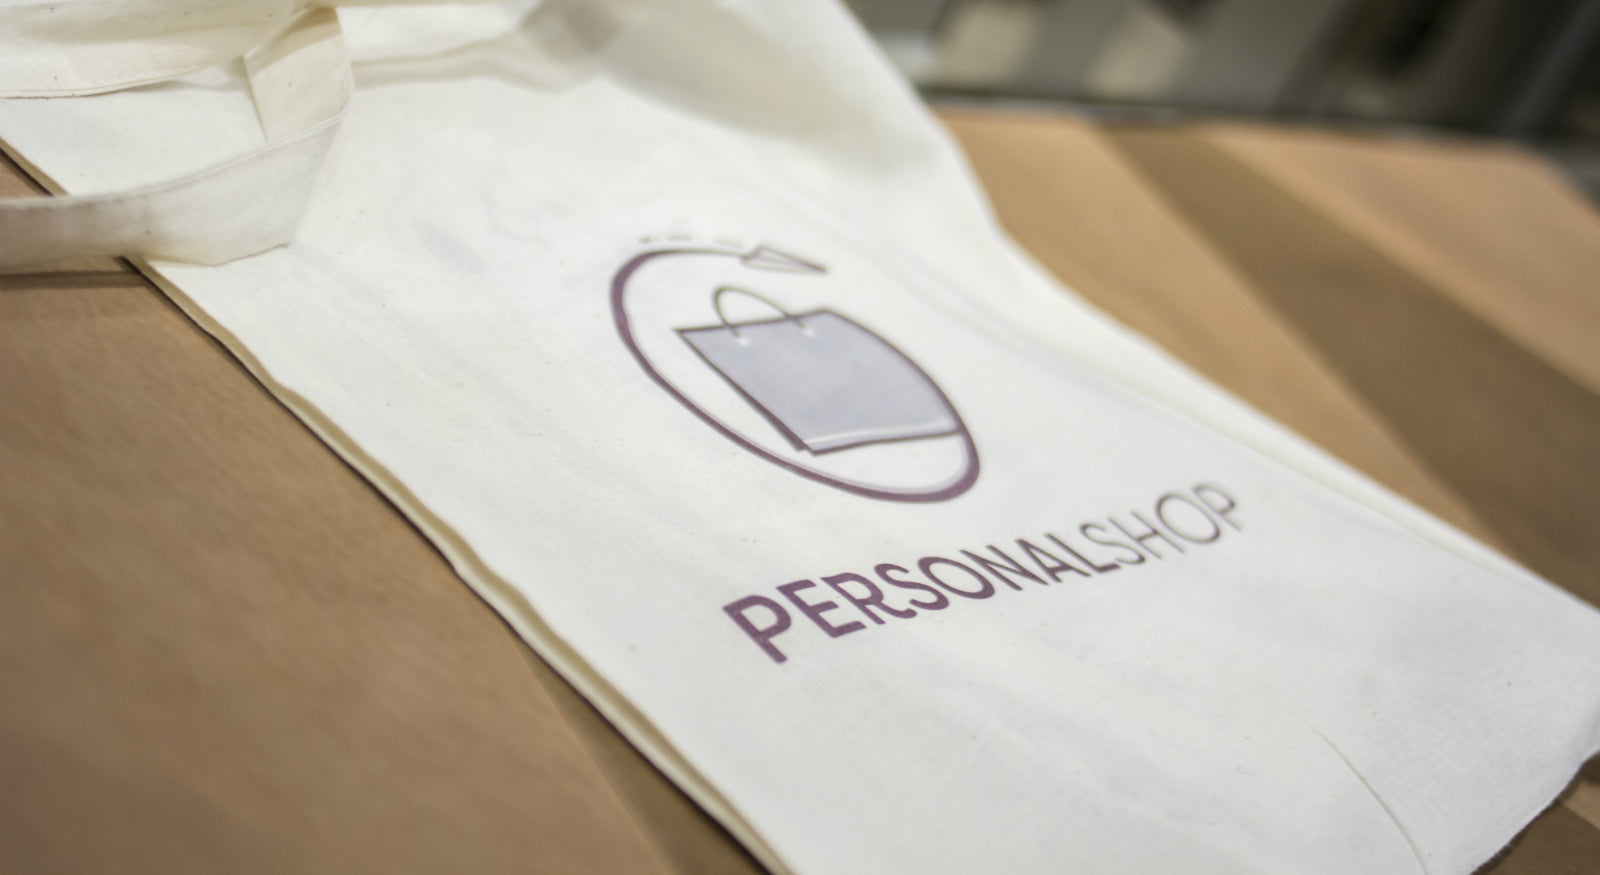 About Personal Shop